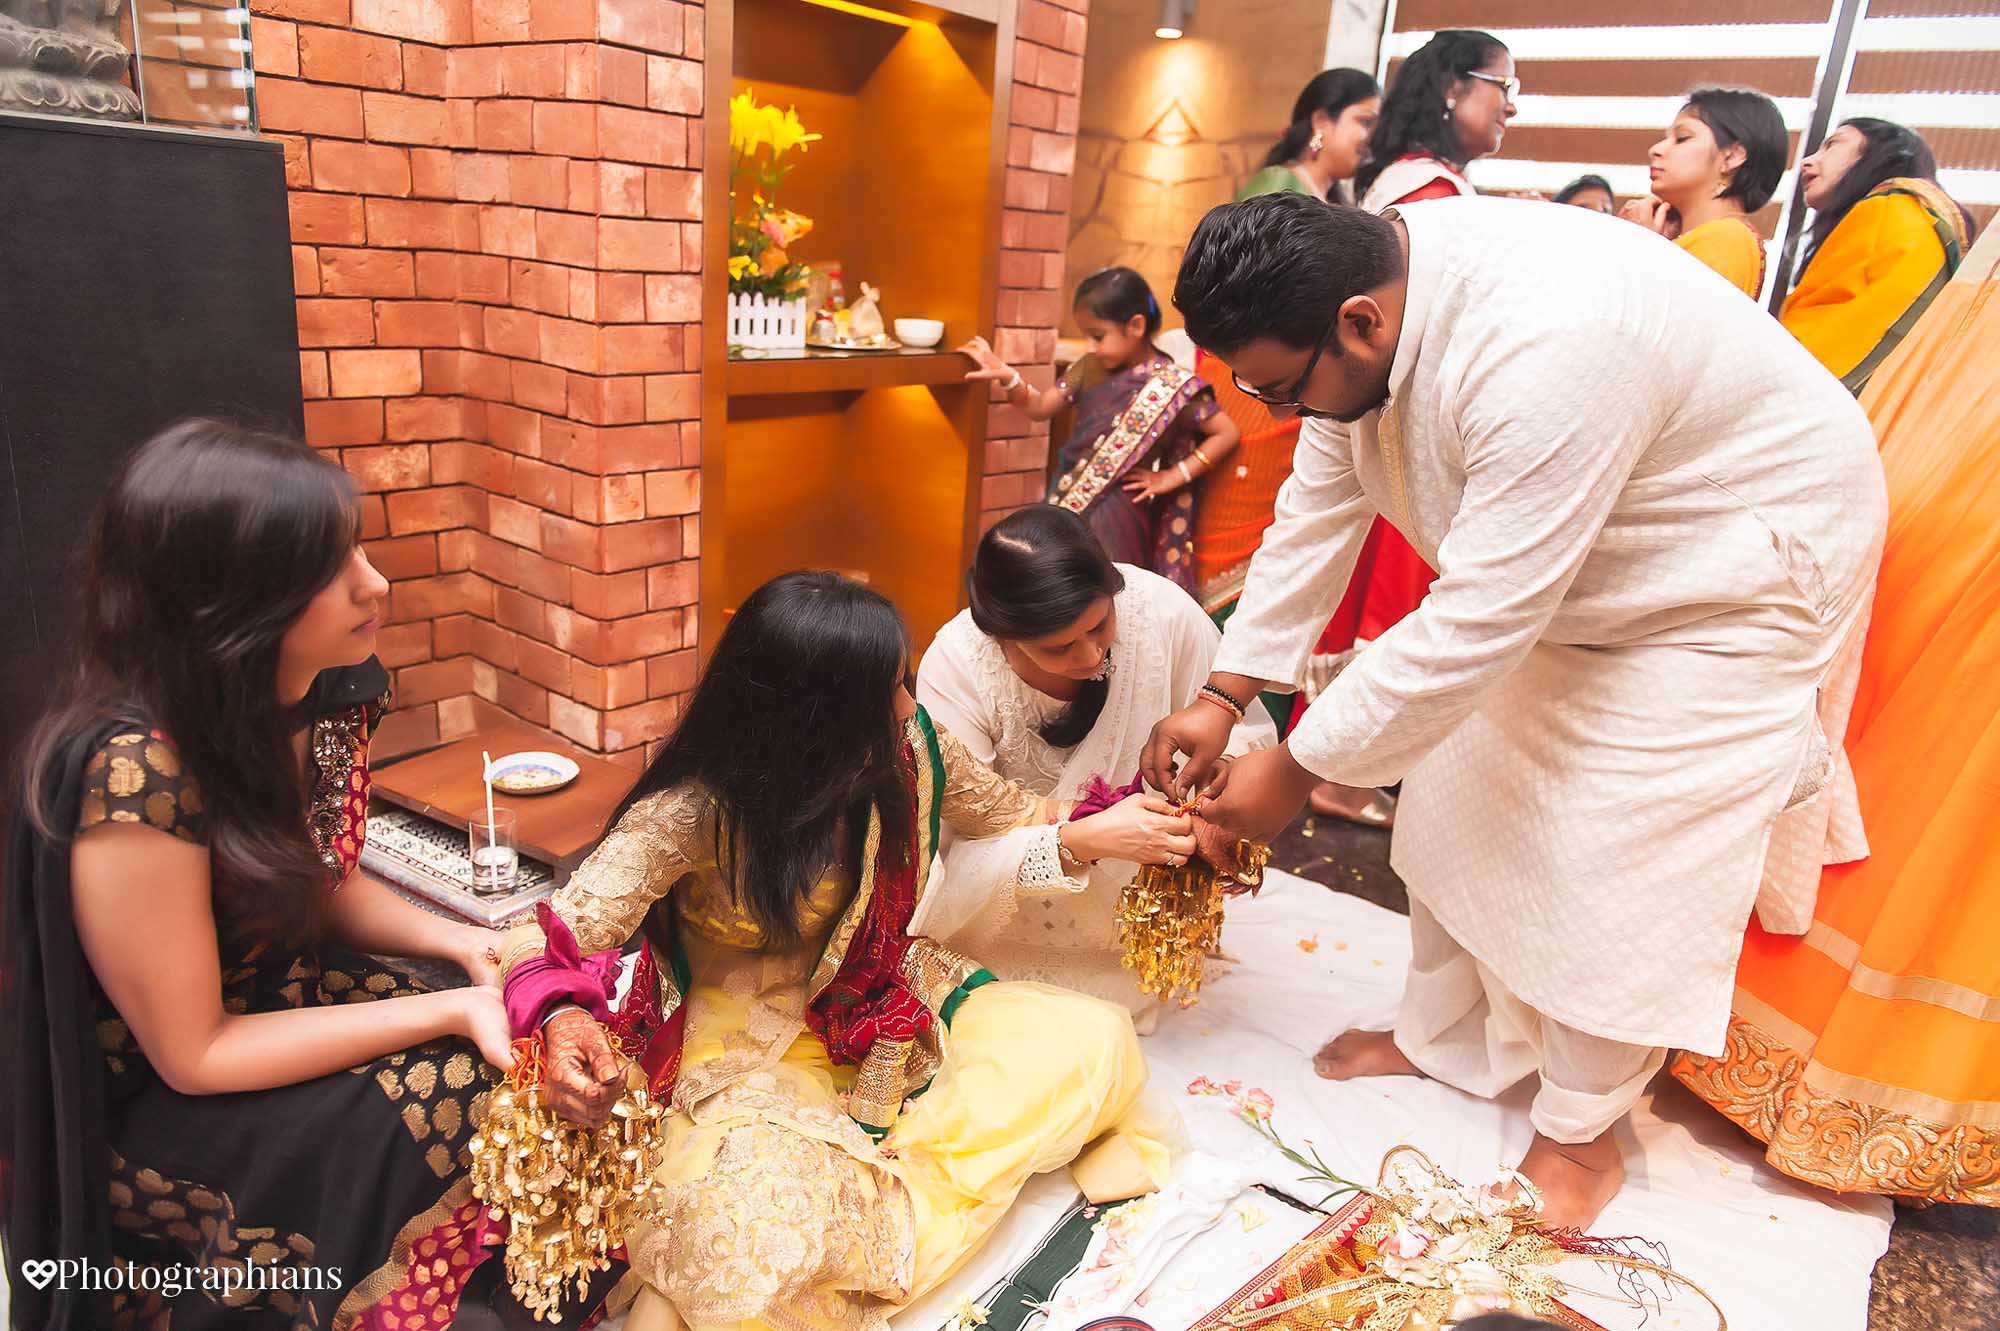 Punjabi_Marwari_Wedding_Kolkata_Photographians_-VIDHI-158